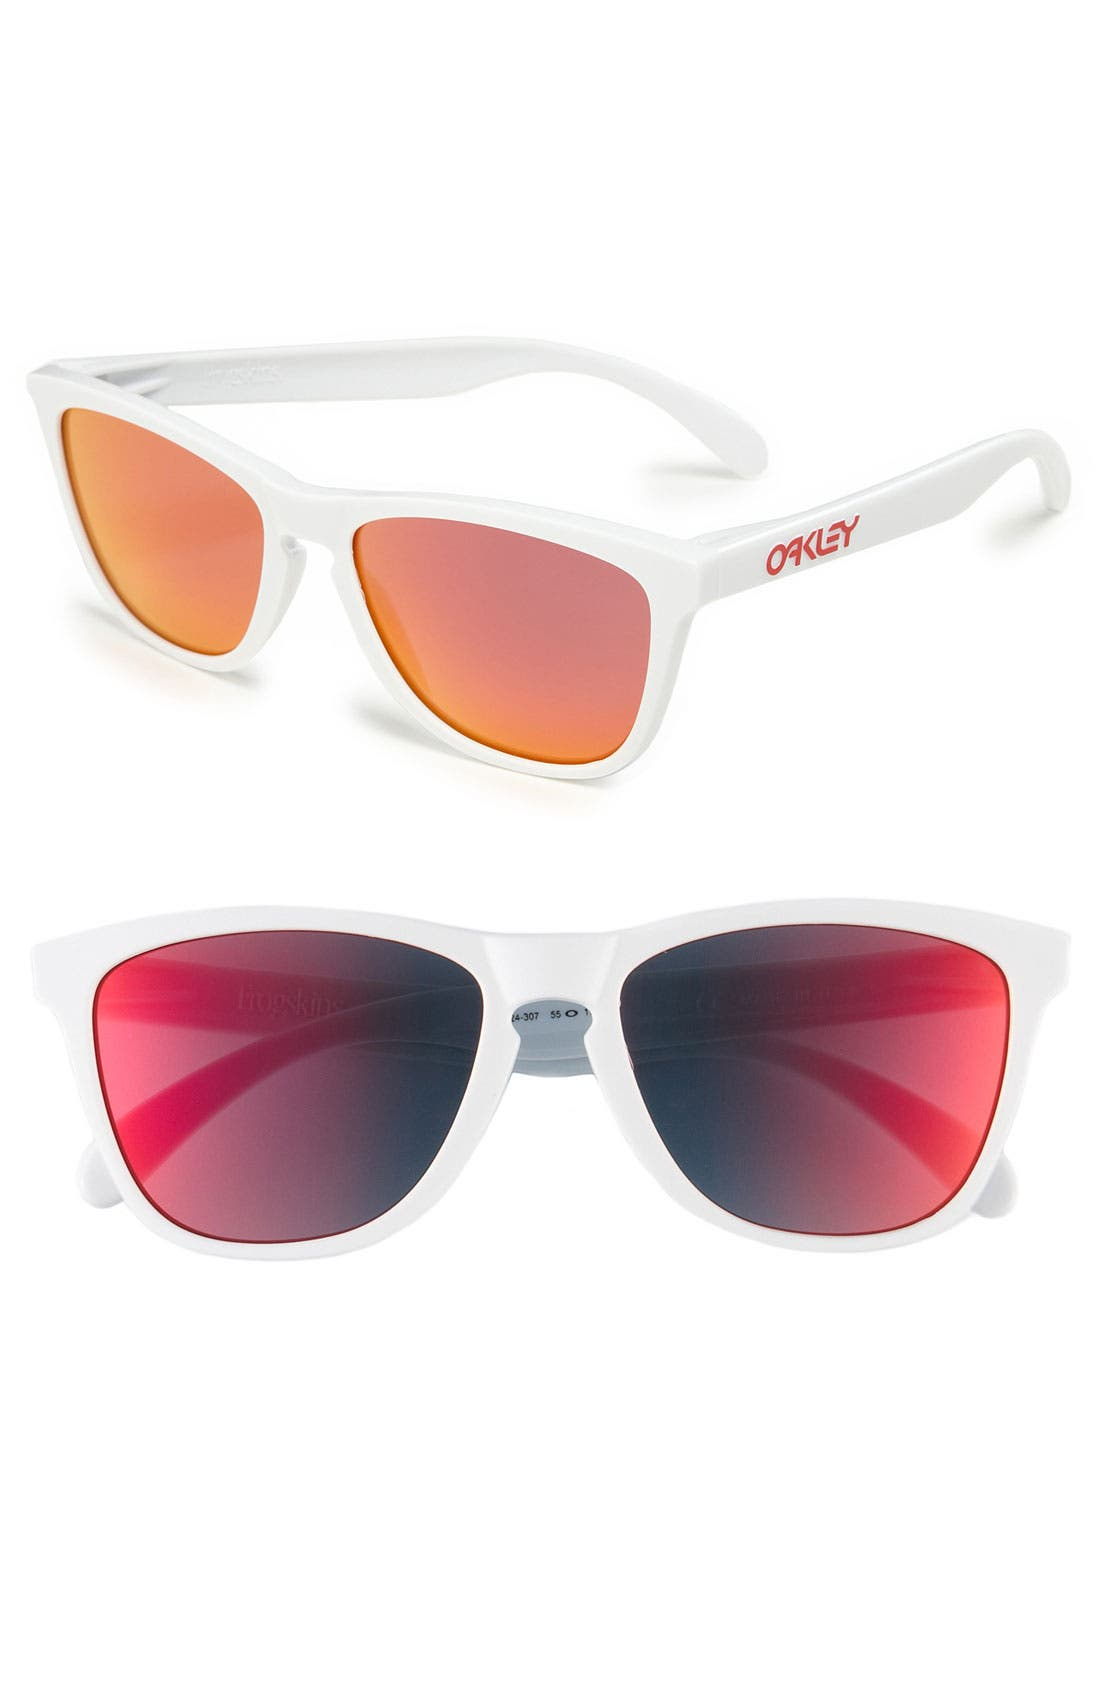 Main Image - Oakley 'Frogskins®' 55mm Sunglasses